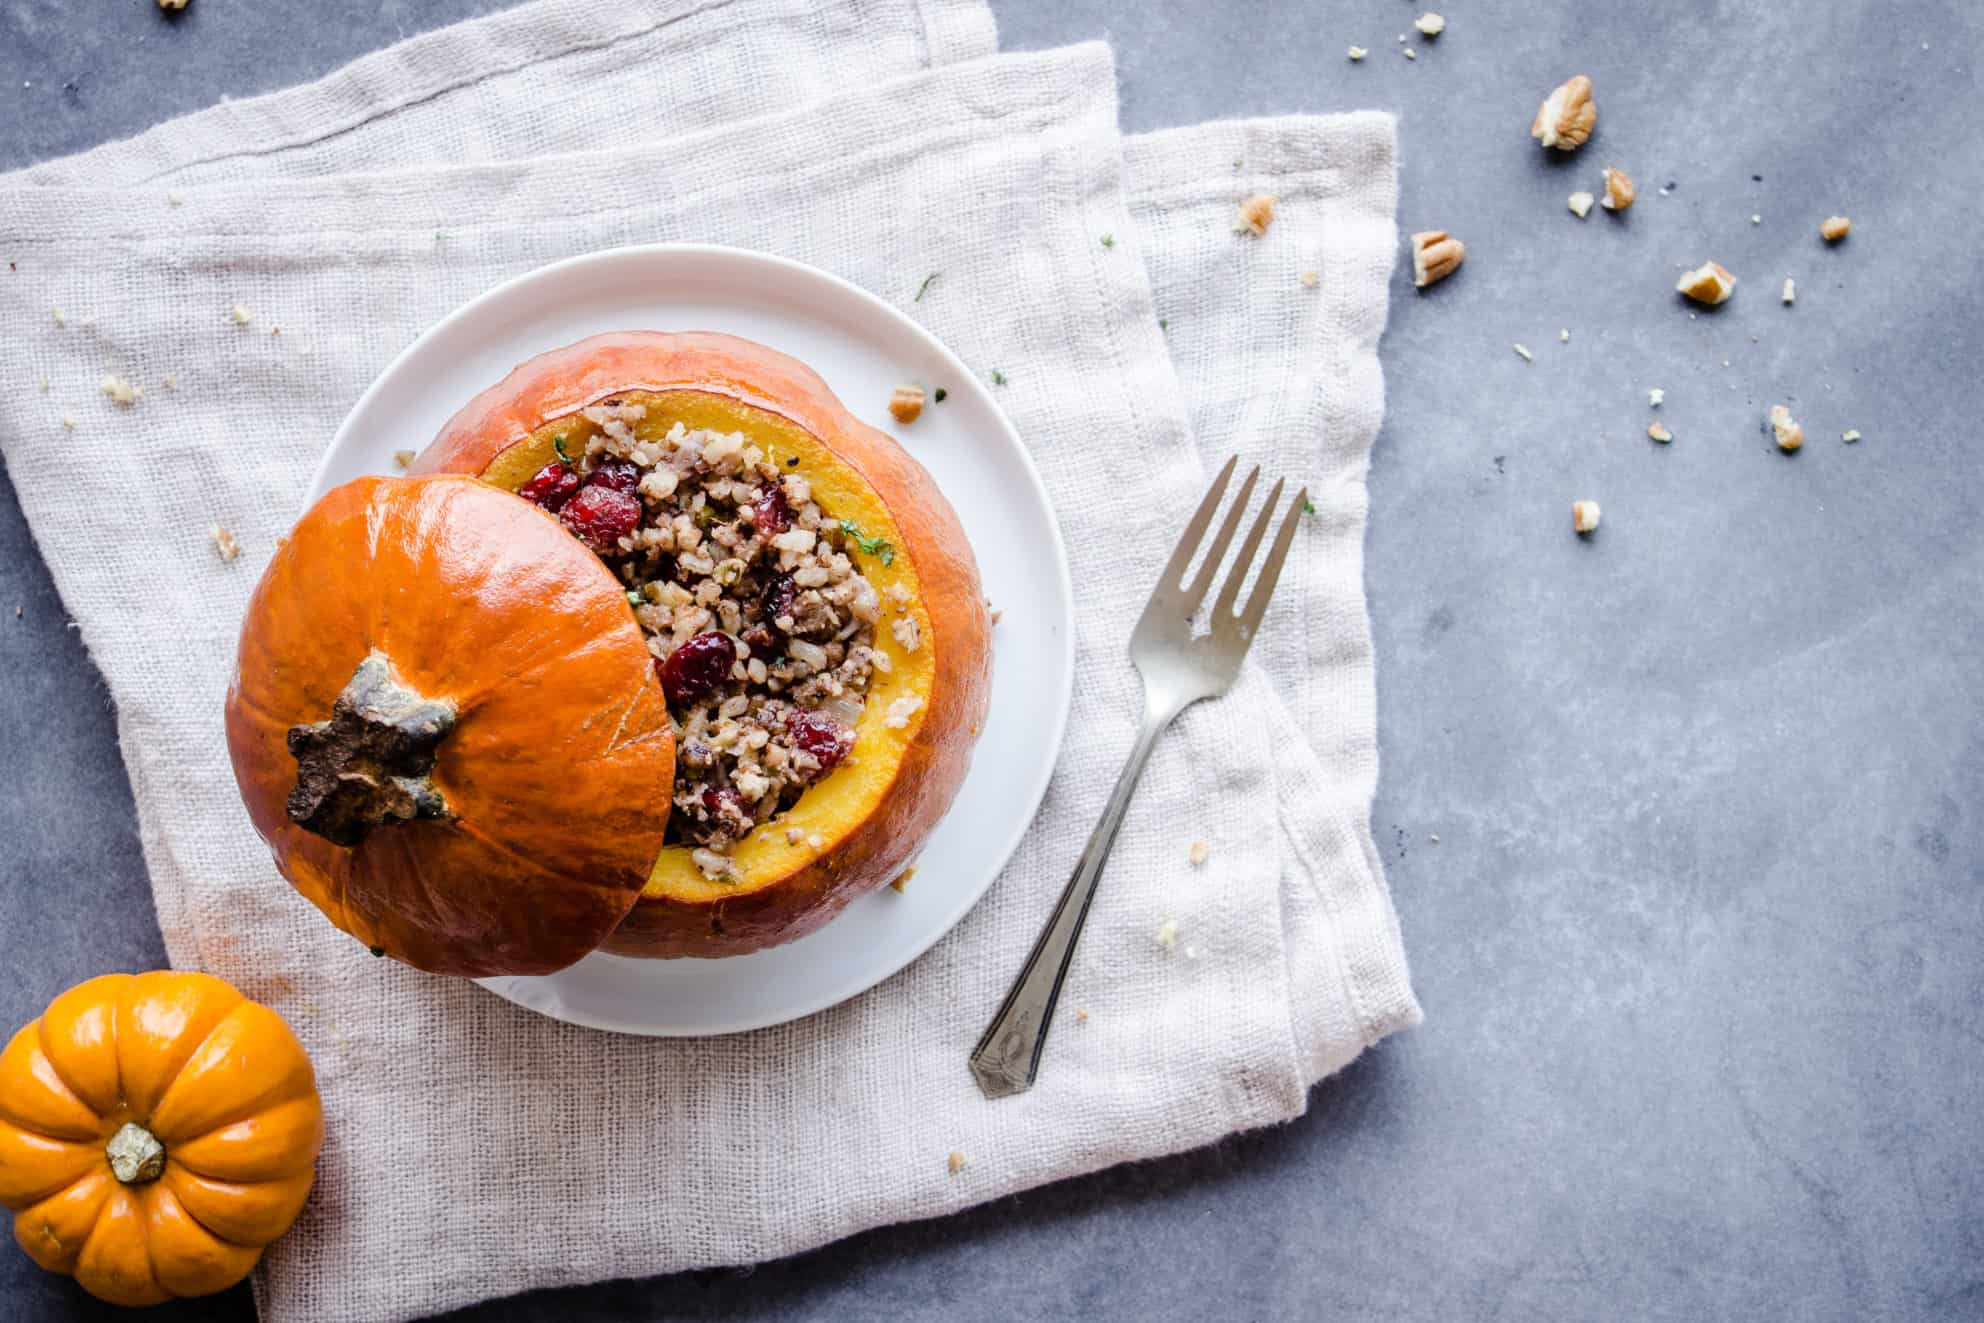 Overhead shot of Stuffed Pumpkin, showing a pumpkin with its lid off, stuffed with cranberries, rice and nuts on a white plate. The plate is on a folded linen napkin which is sitting on a grey table. To one side is a smaller pumpkin, silver cutlery and pecan crumbs.